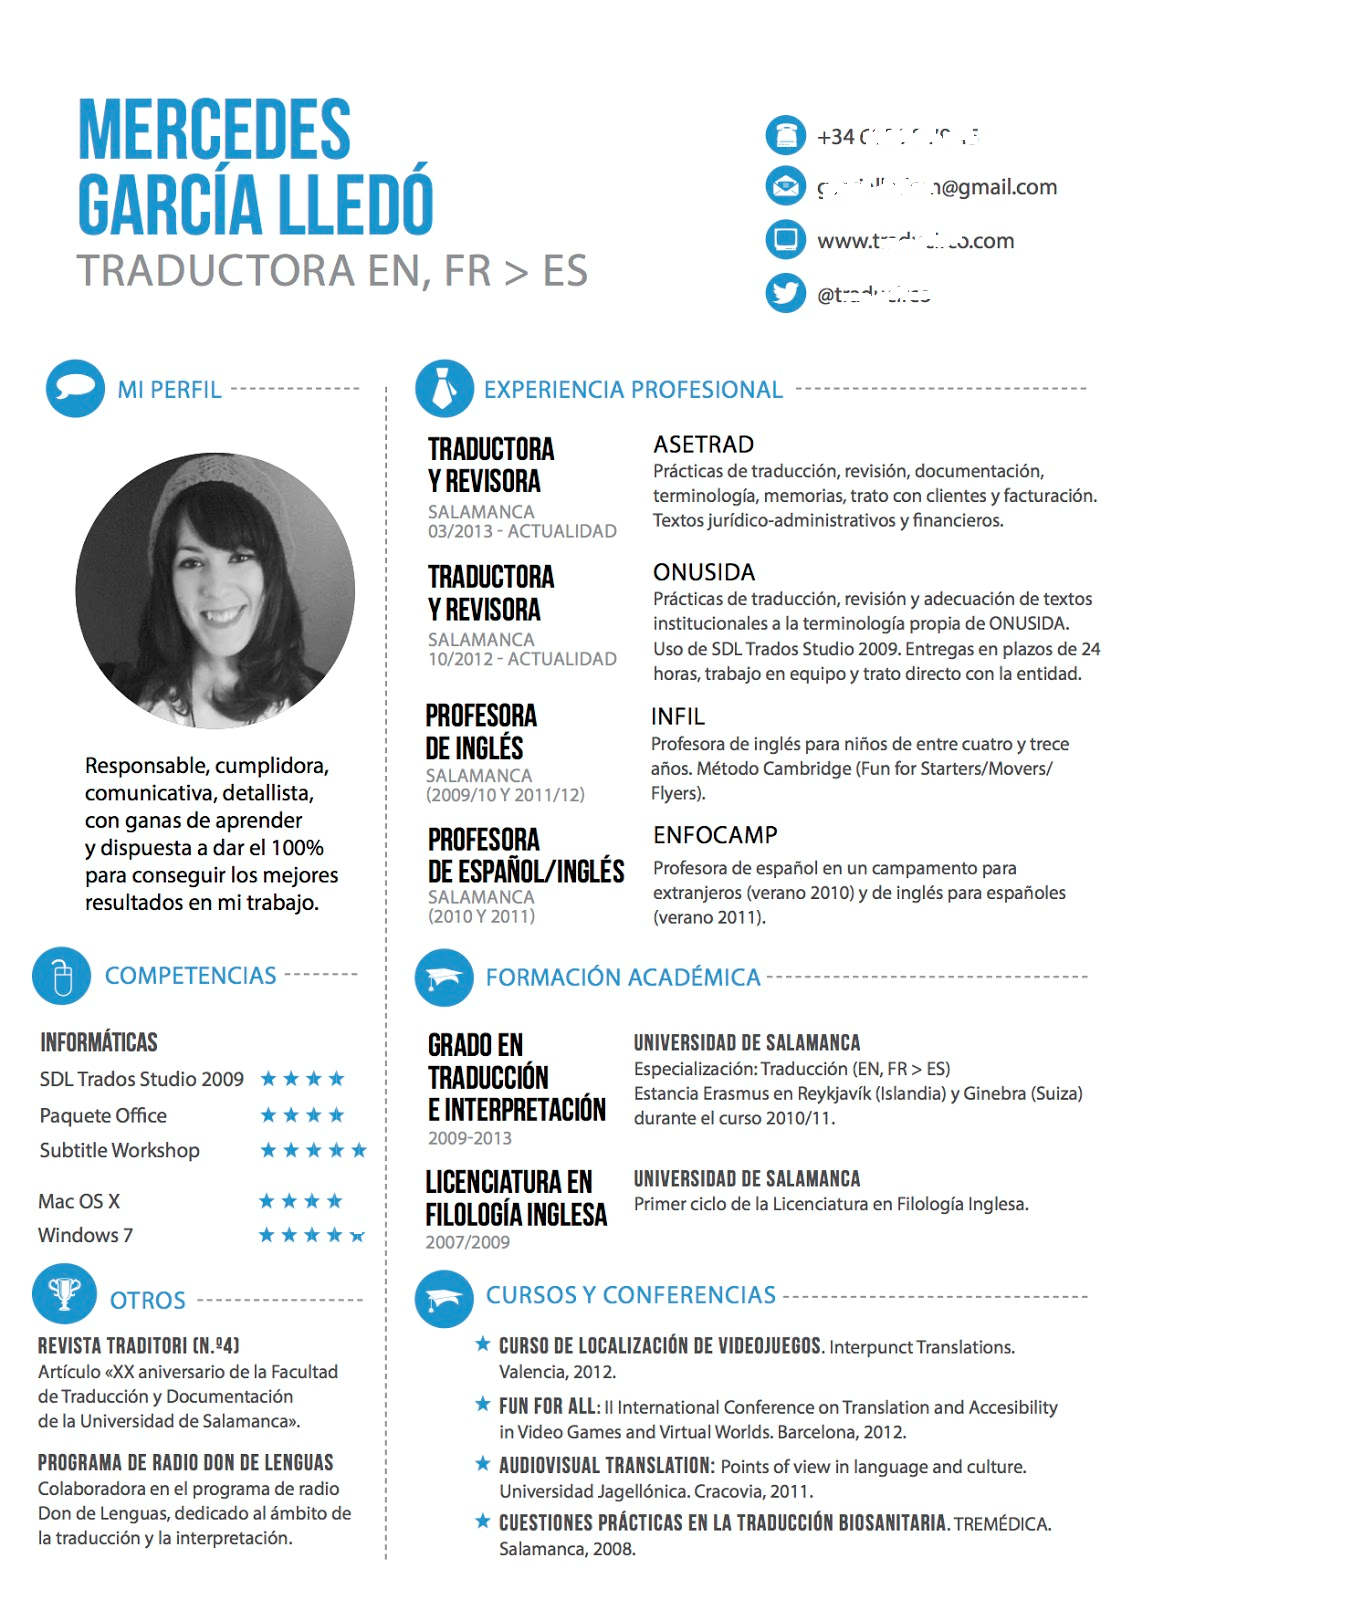 Curriculum vitae formato objetivo profesional - pay someone to write ...